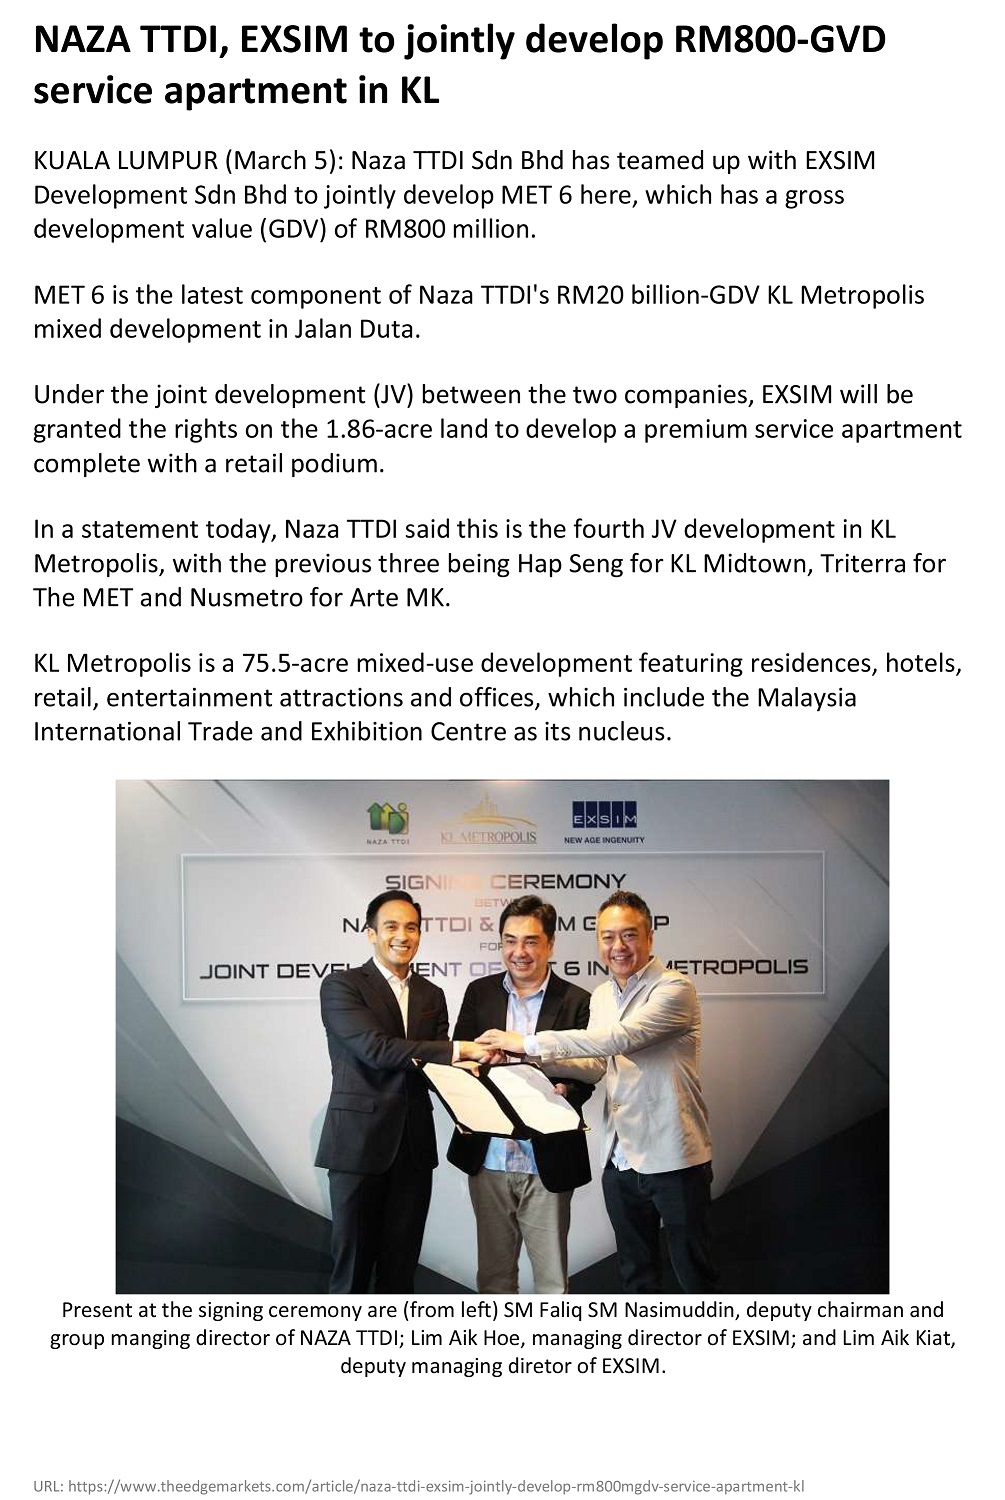 The Edge Malaysia - NAZA TTDI, EXSIM to jointly develop RM800-GVD service apartment in KL